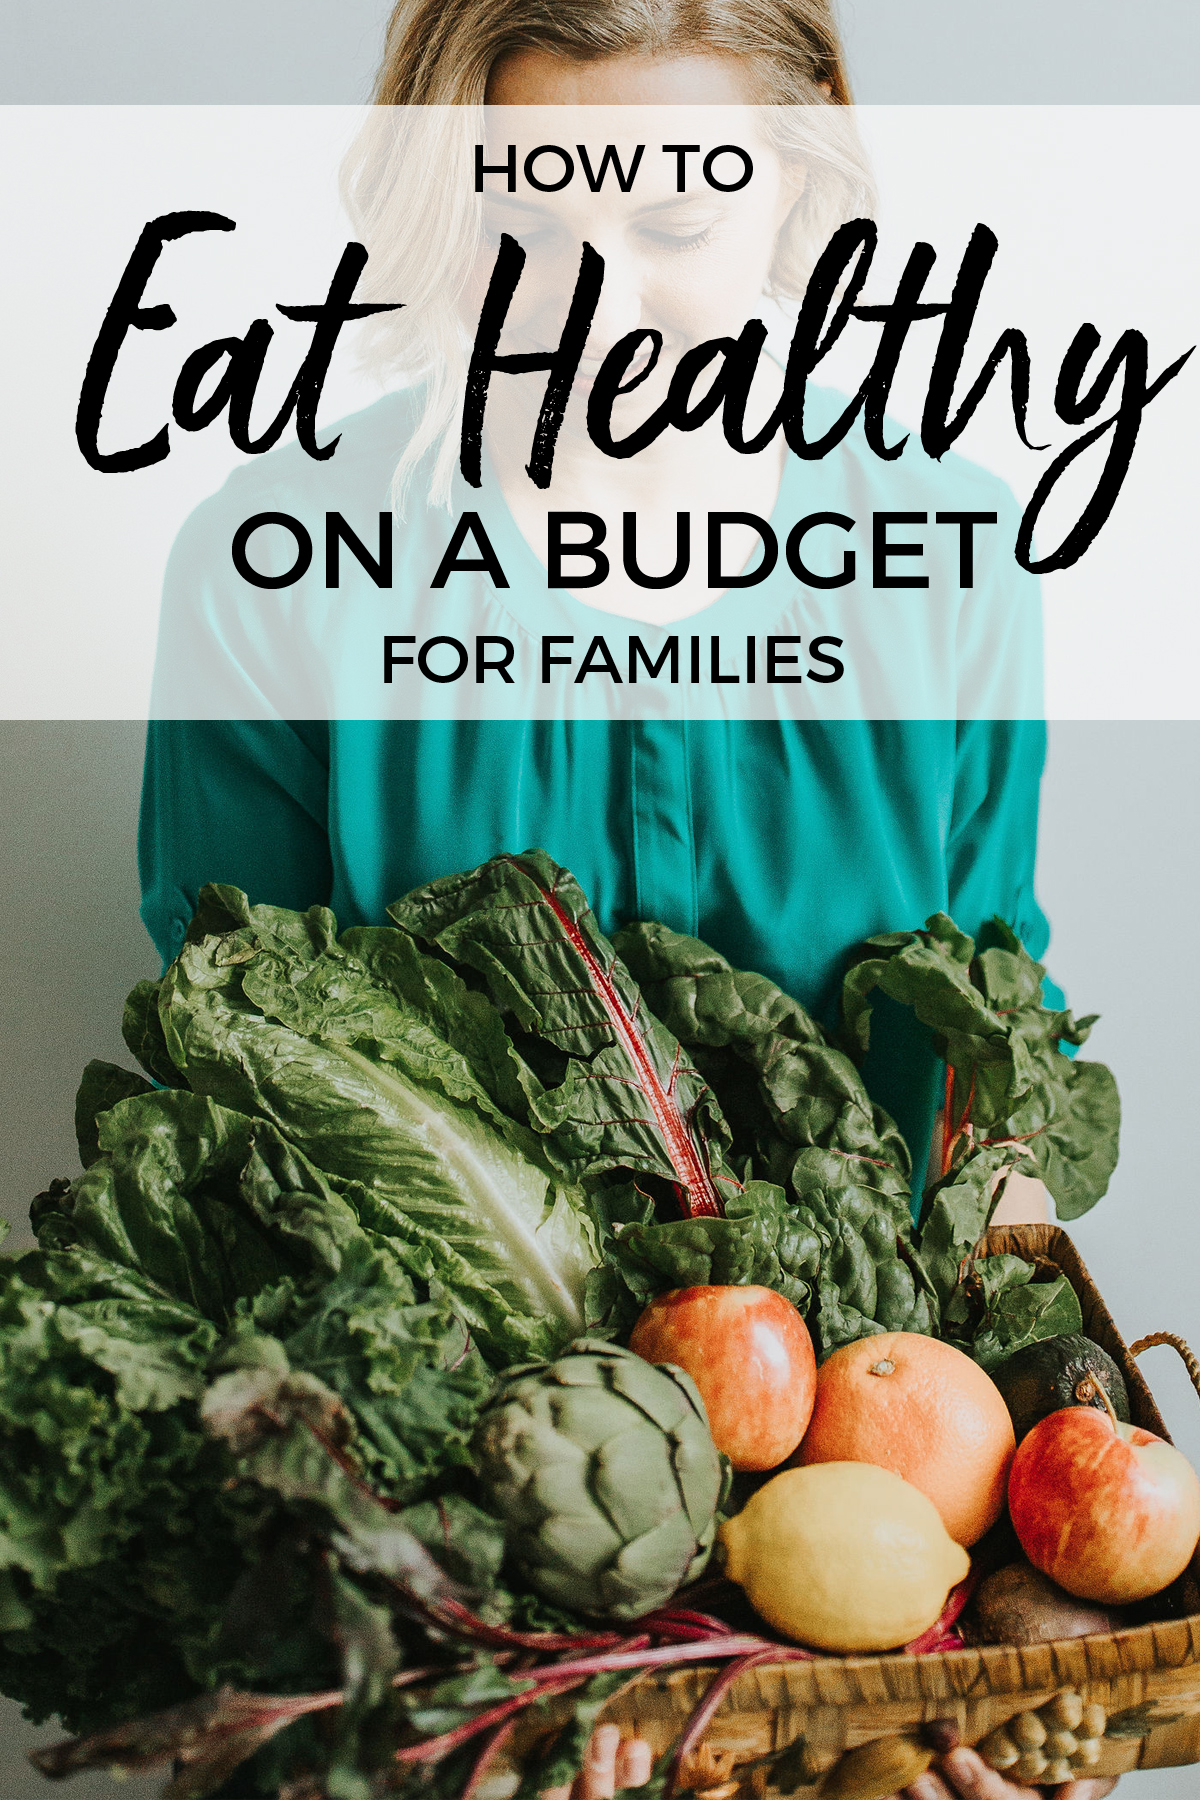 How to eat healthy on a budget for families. How to get started meal planning healthy recipes for your family using whole foods  Families | meal planning | recipes | grocery lists | simple | whole foods | dinners | cooking | nutrition | vegetables #mealplanning #healthyeating | family friendly recipes | grocery shopping | budgeting | kid friendly |